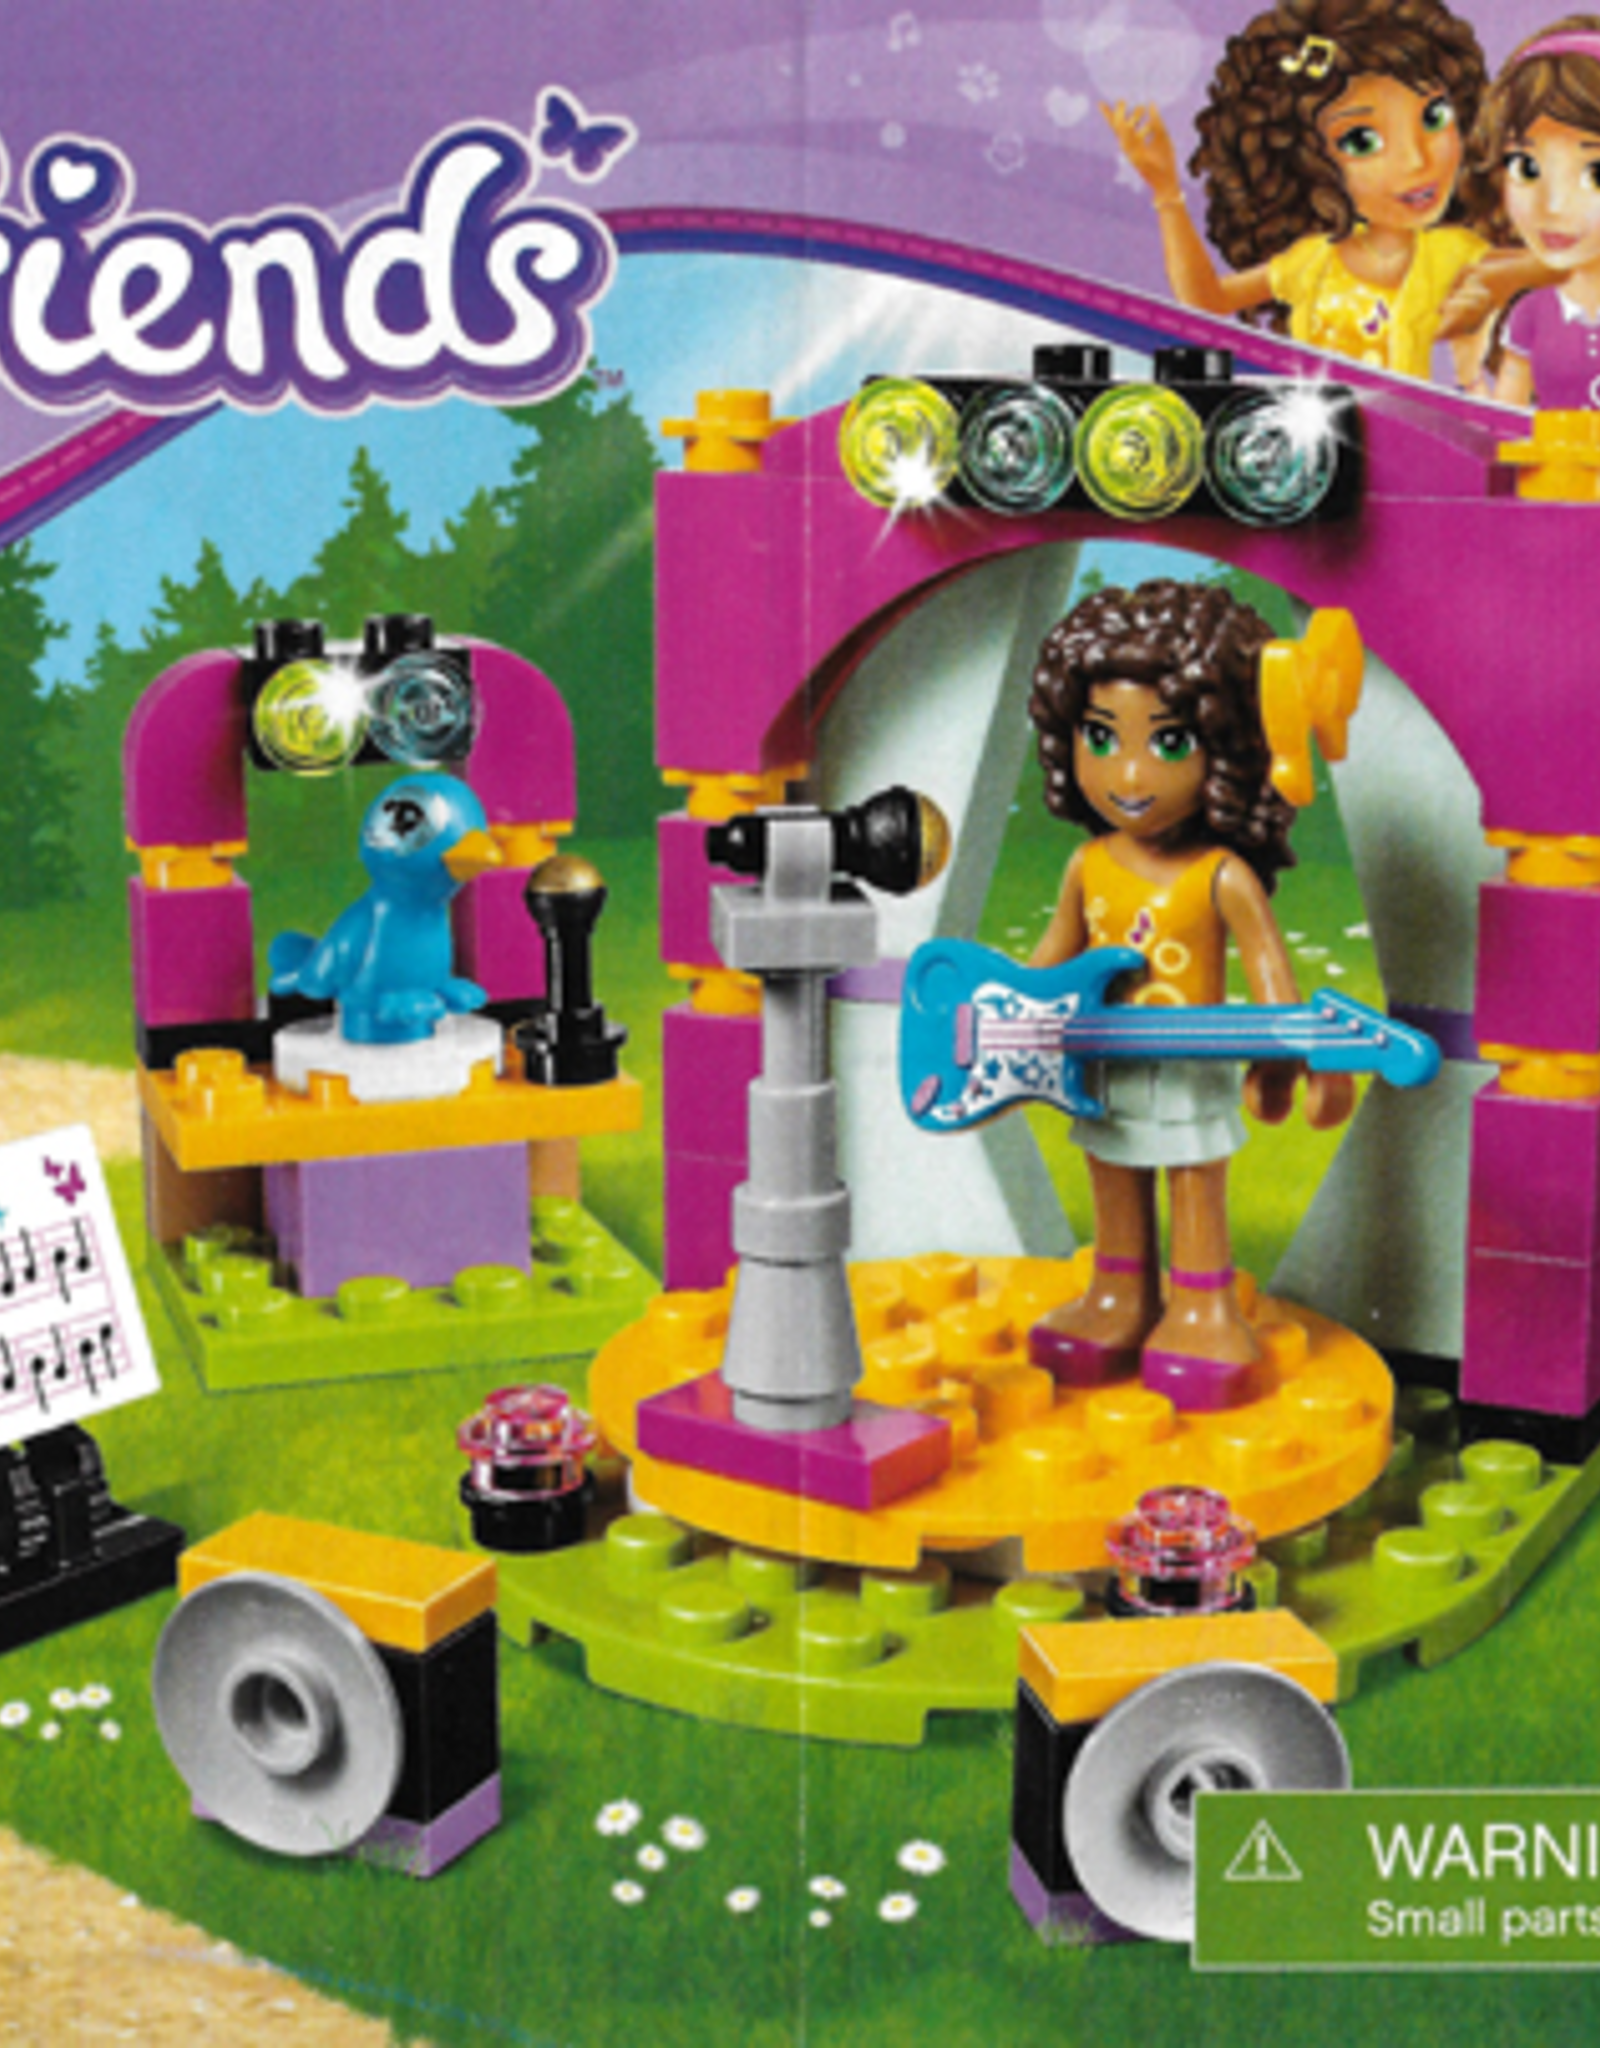 LEGO LEGO 41309 Andrea's Musical Duet FRIENDS